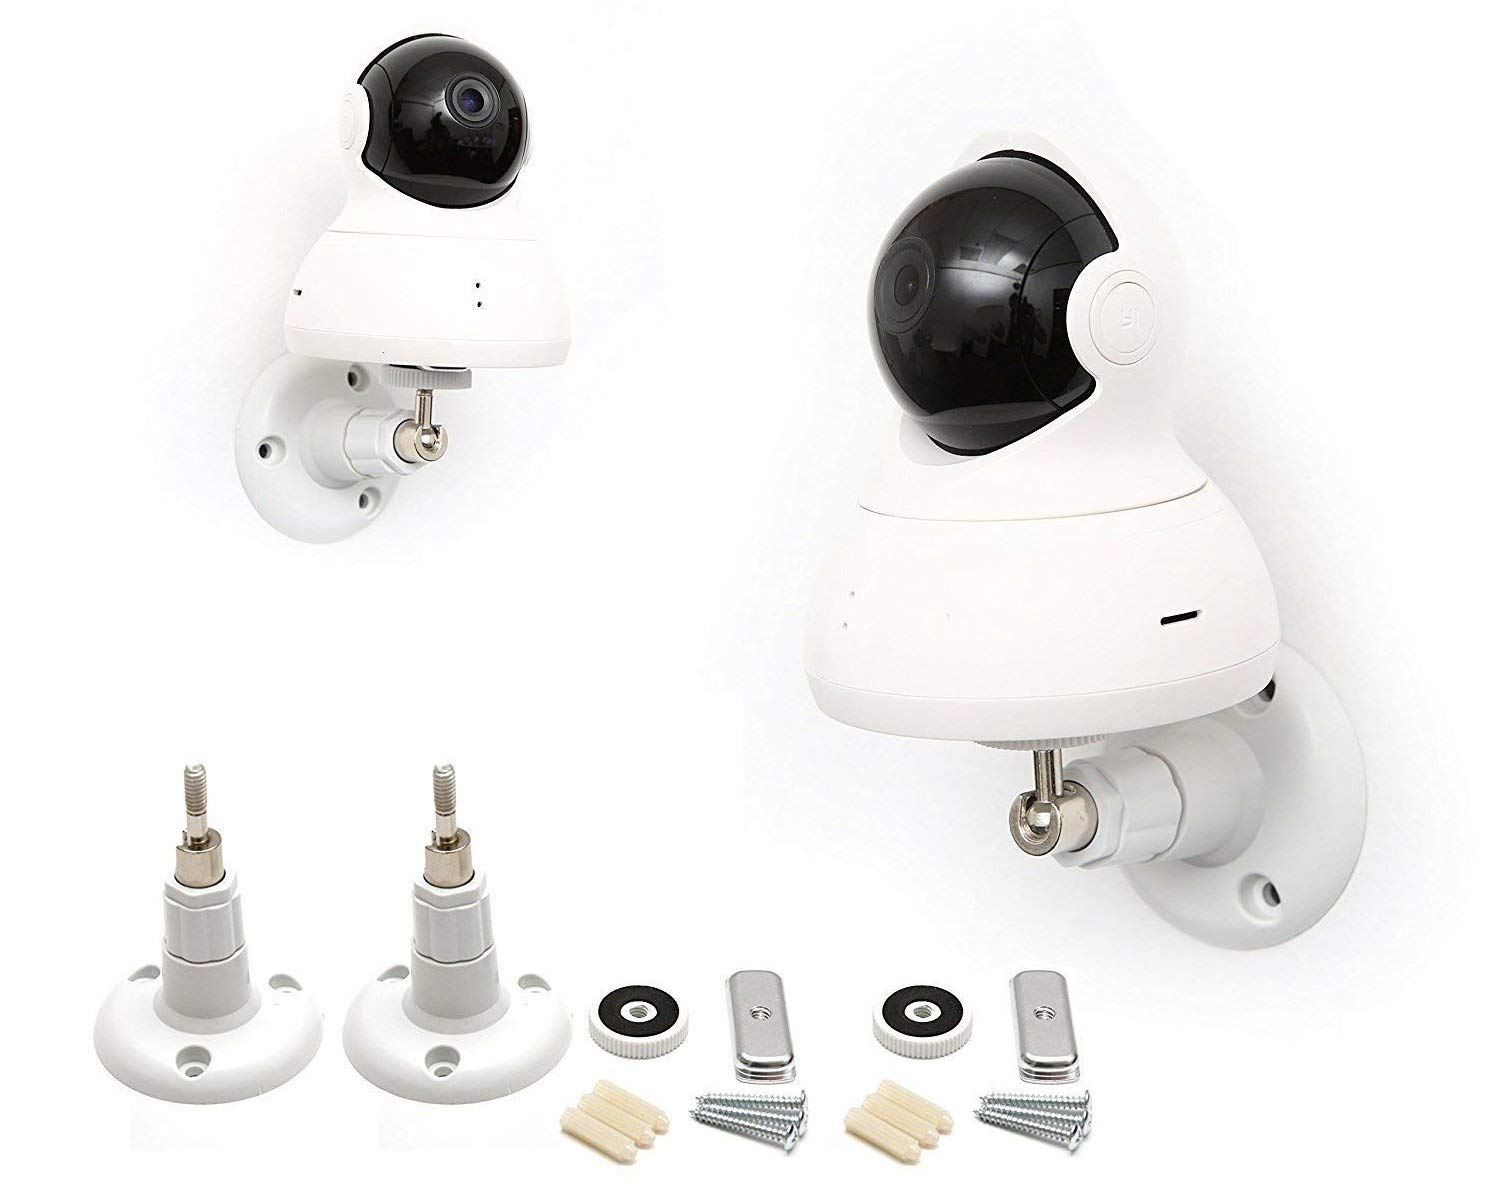 2 Pack Set Yi Dome Camera Articulating Mount Wall Mount Bracket Full Install kit (White) by Fstop Labs